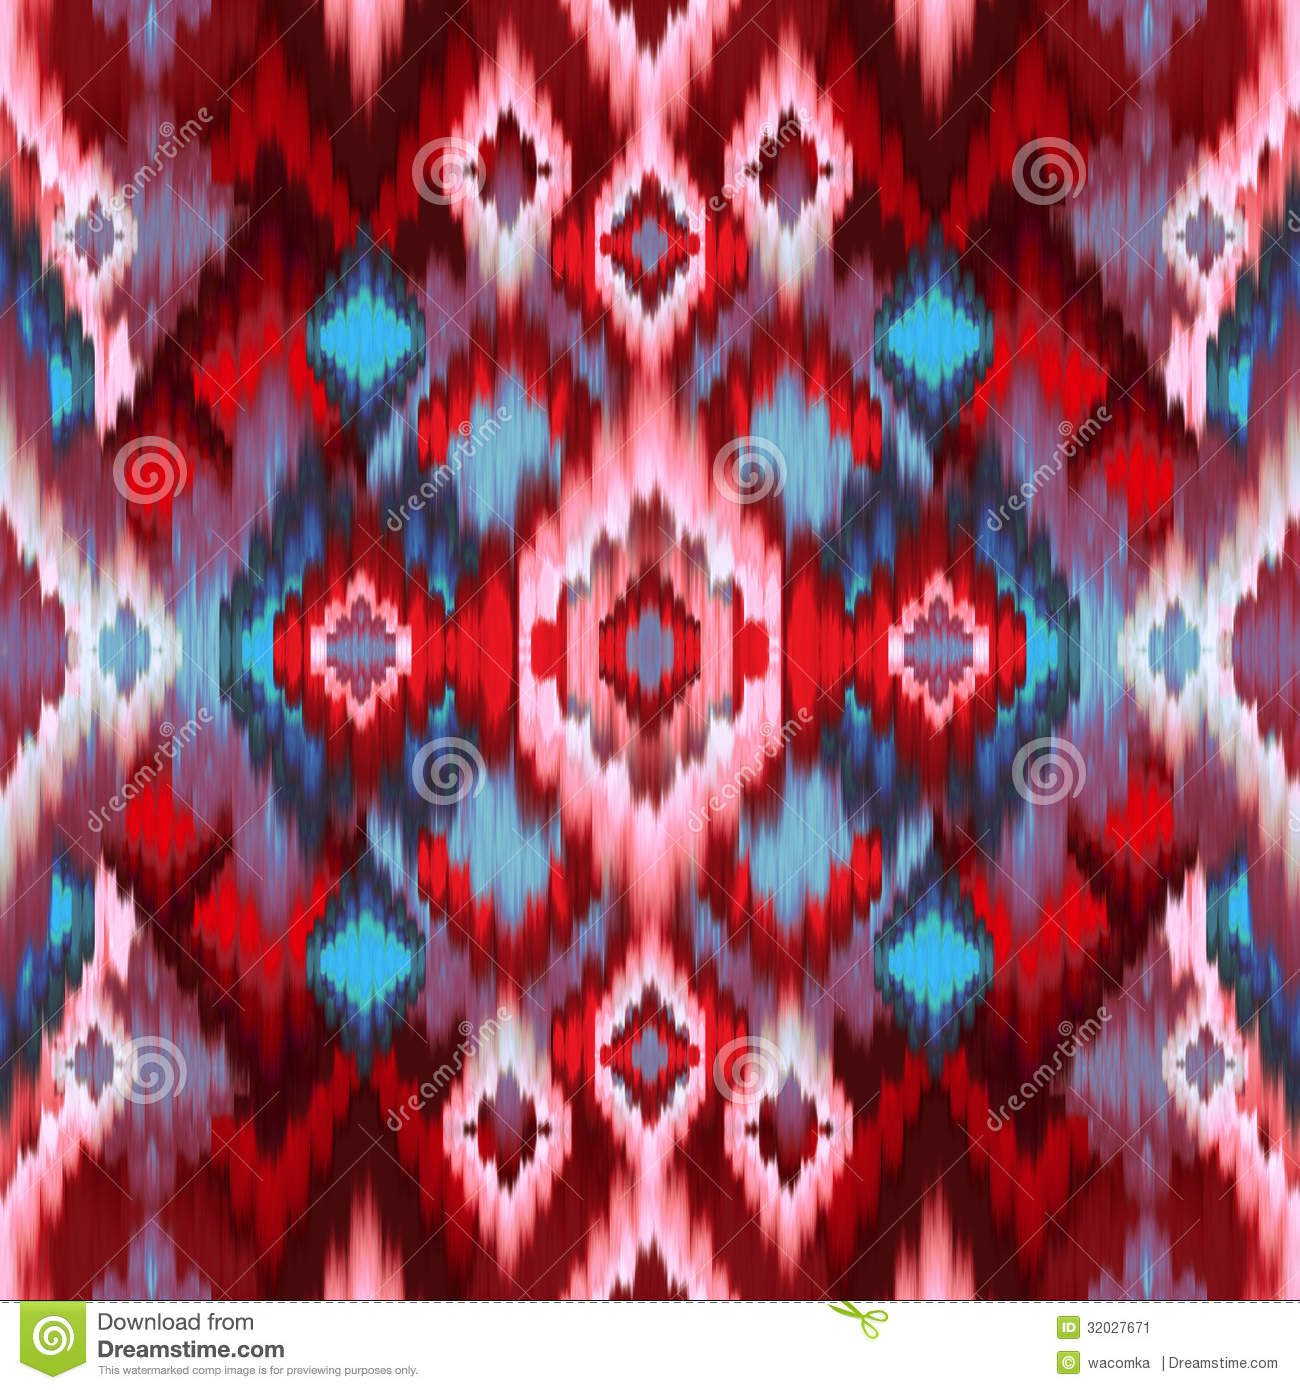 Seamless intricate ikat pattern background stock image - Ikat muster ethno design ...